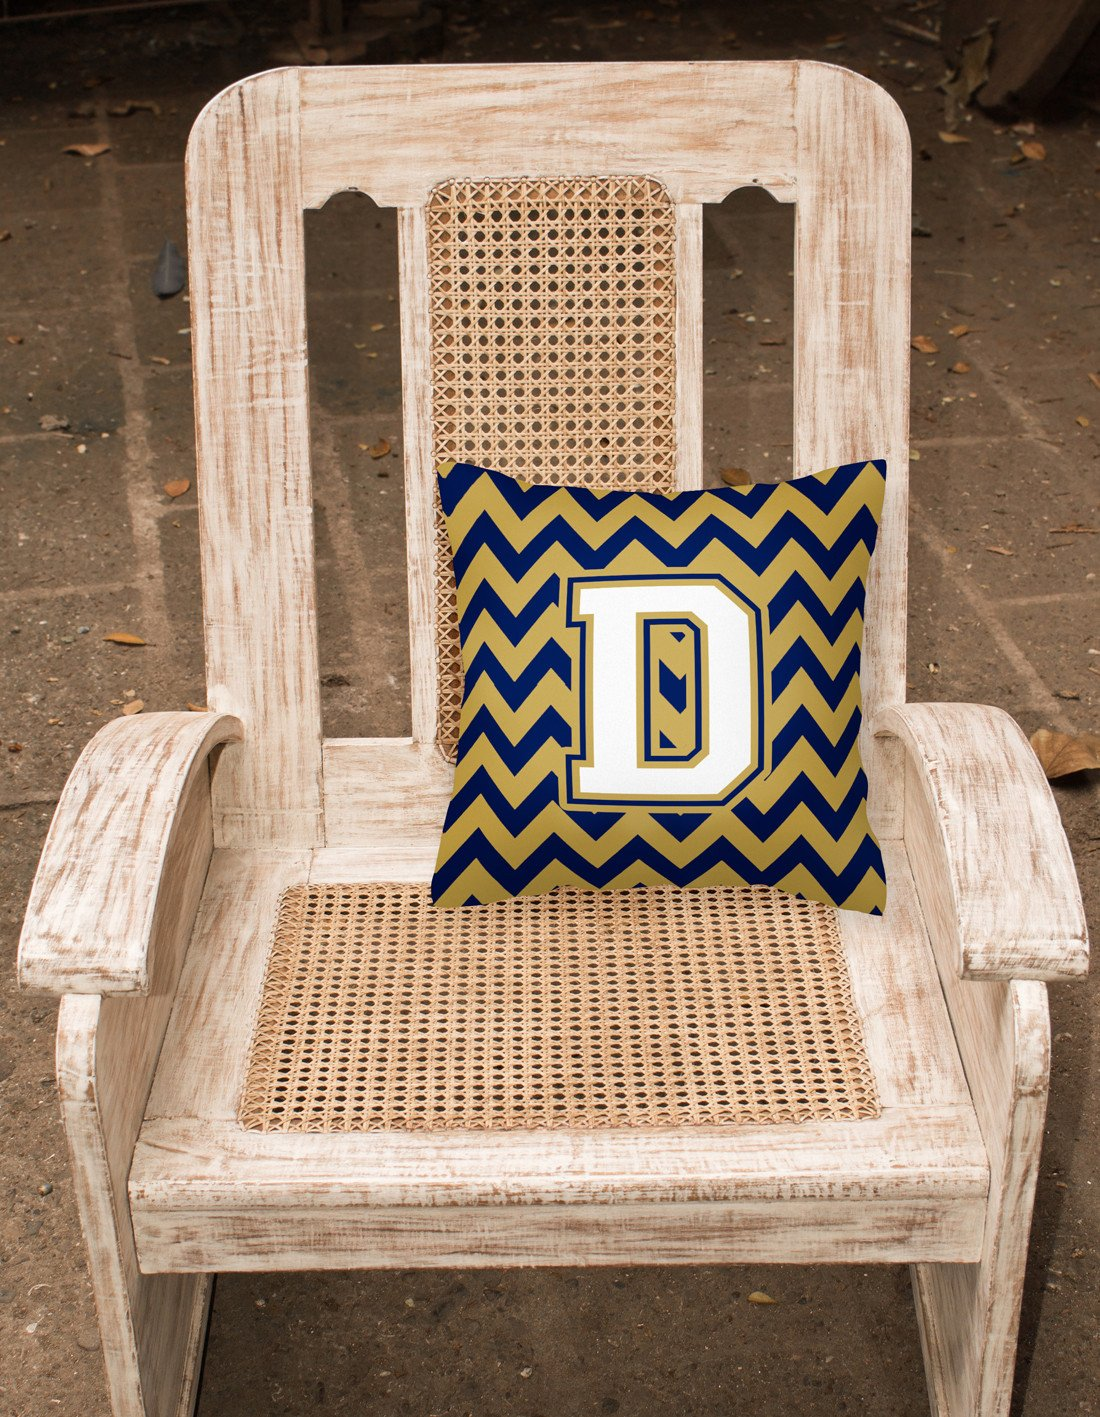 Letter D Chevron Navy Blue and Gold Fabric Decorative Pillow CJ1057-DPW1414 by Caroline's Treasures